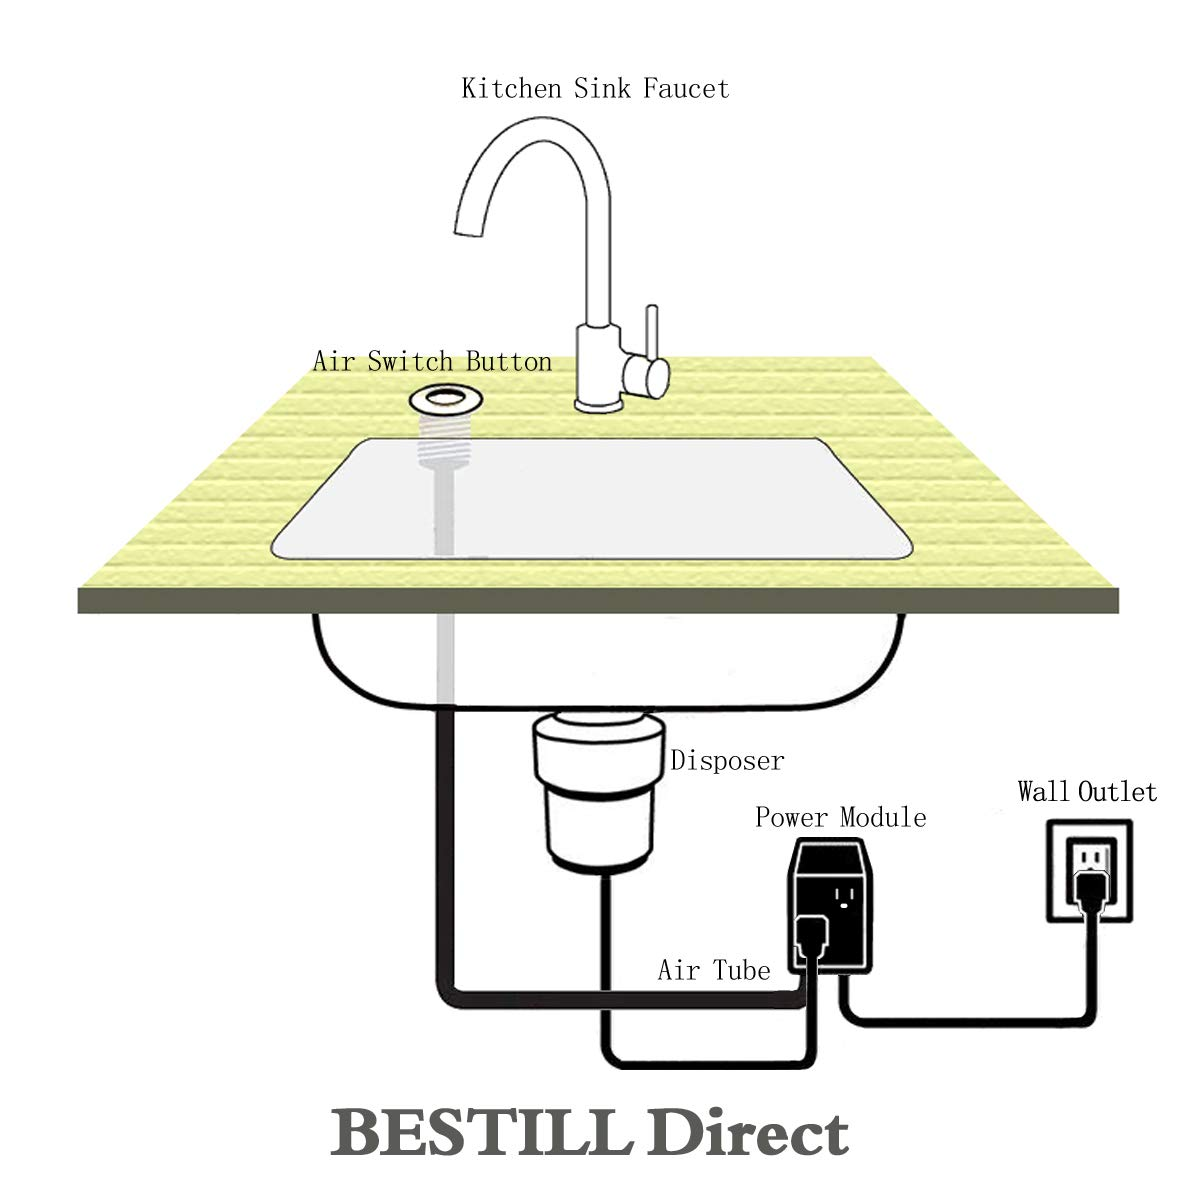 Bestill Sink Dual Outlet Air Switch For Garbage Disposal Double Plumbing Diagram Dishwasher And Matte Black Home Improvement